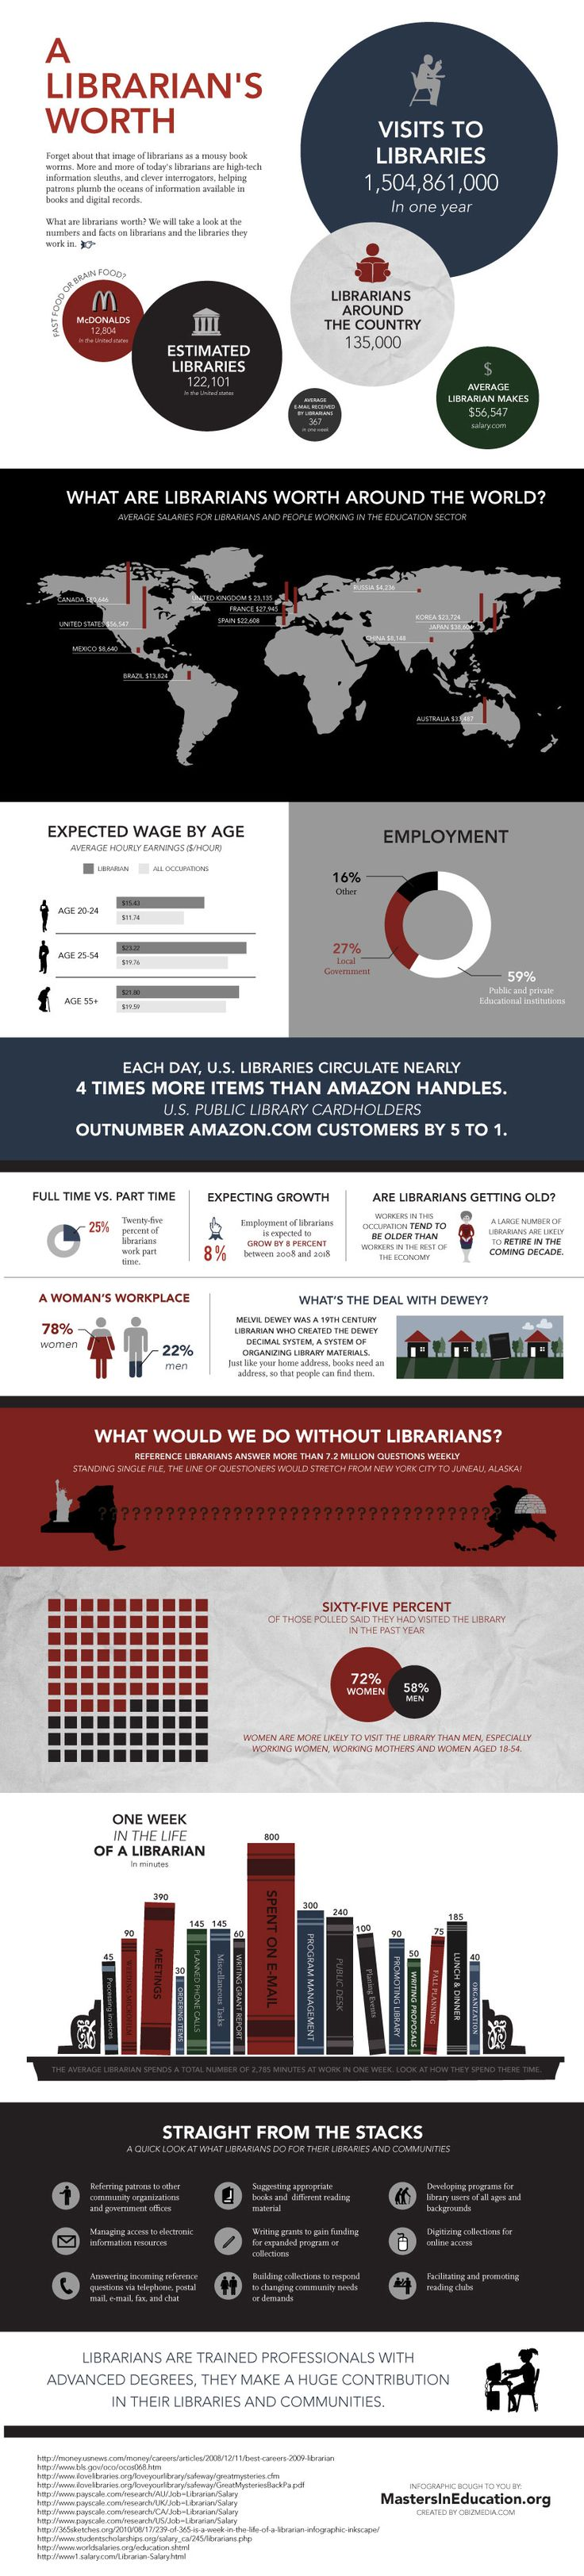 Librarians and libraries' worth around the world infographic ~ still a career that I'm considering/would probably enjoy.